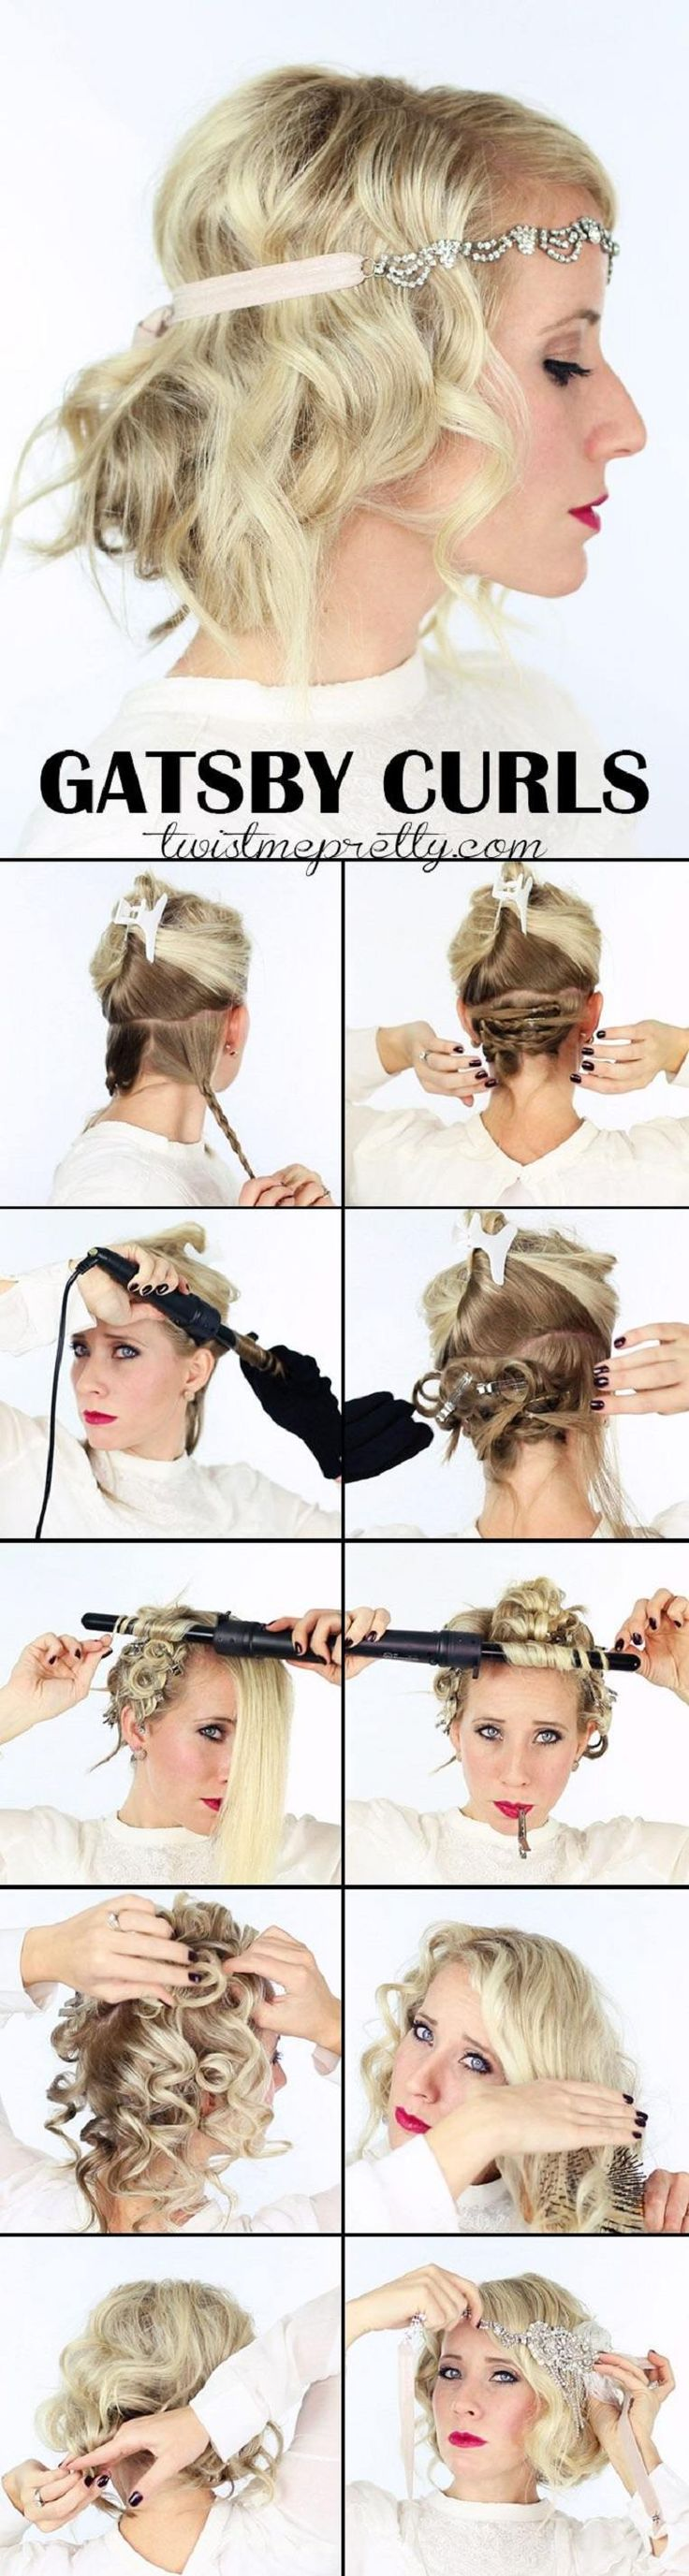 diy-wedding-hairstyles-12-05112015-ky